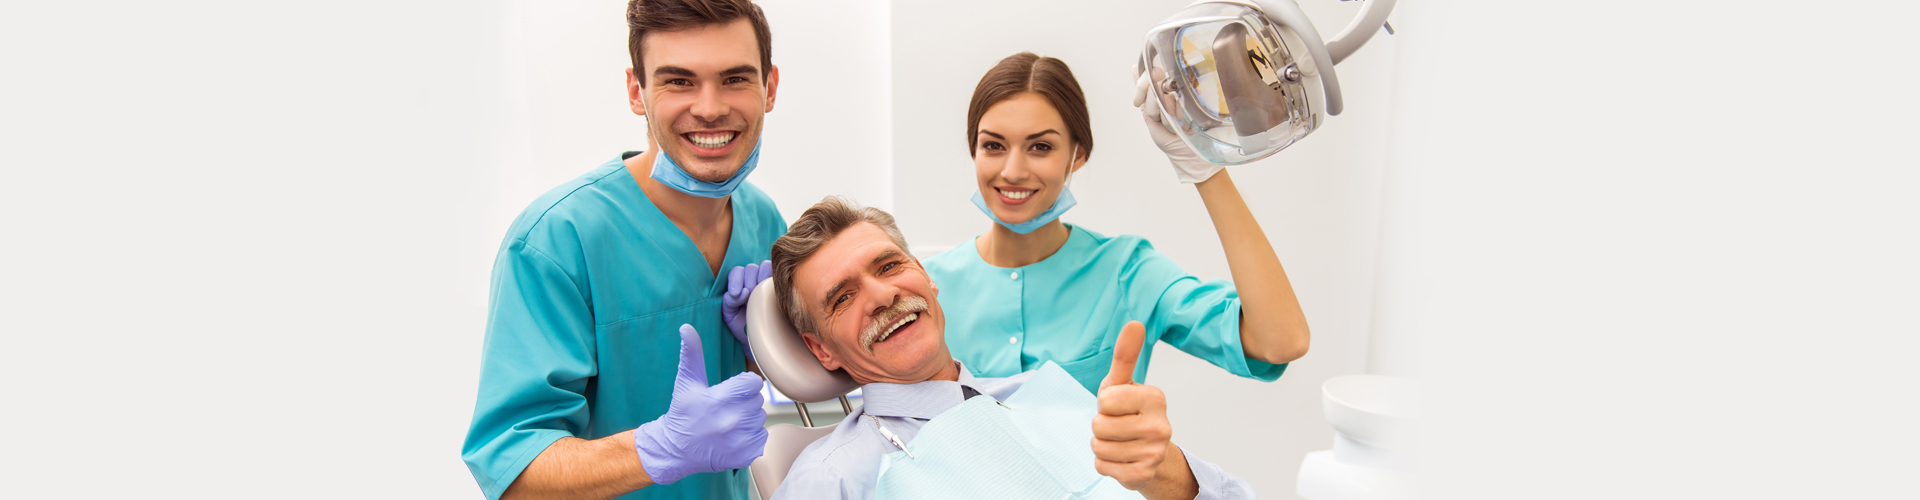 Getting Dental Implants? Here Is What You Need to Know